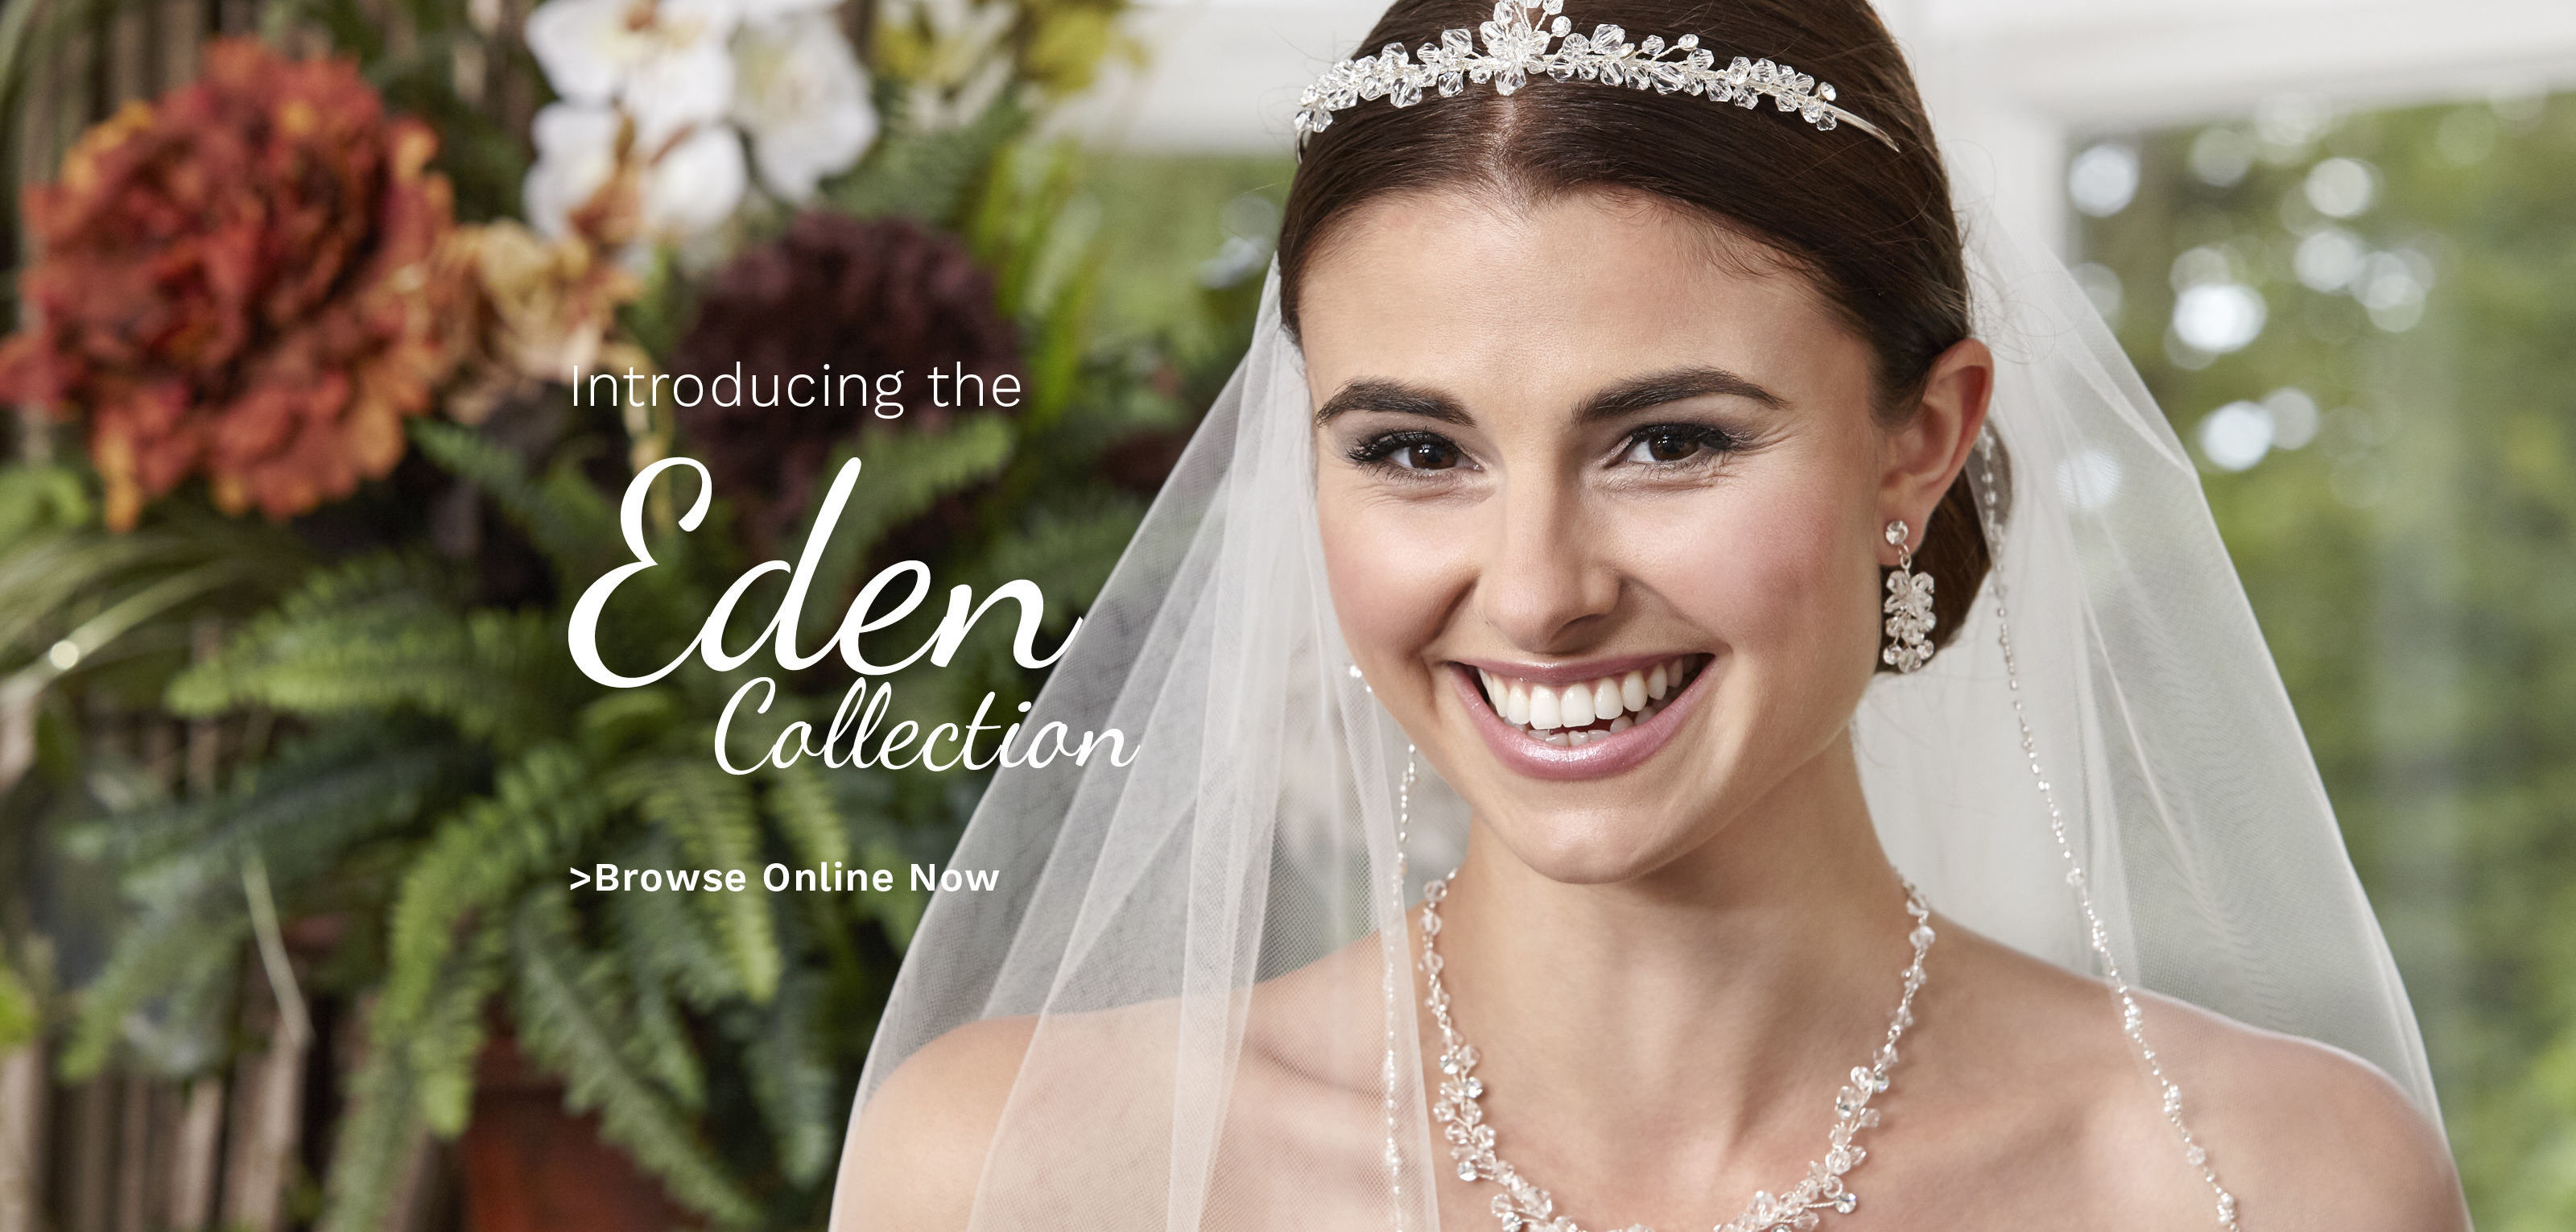 Eden Collection banner copy